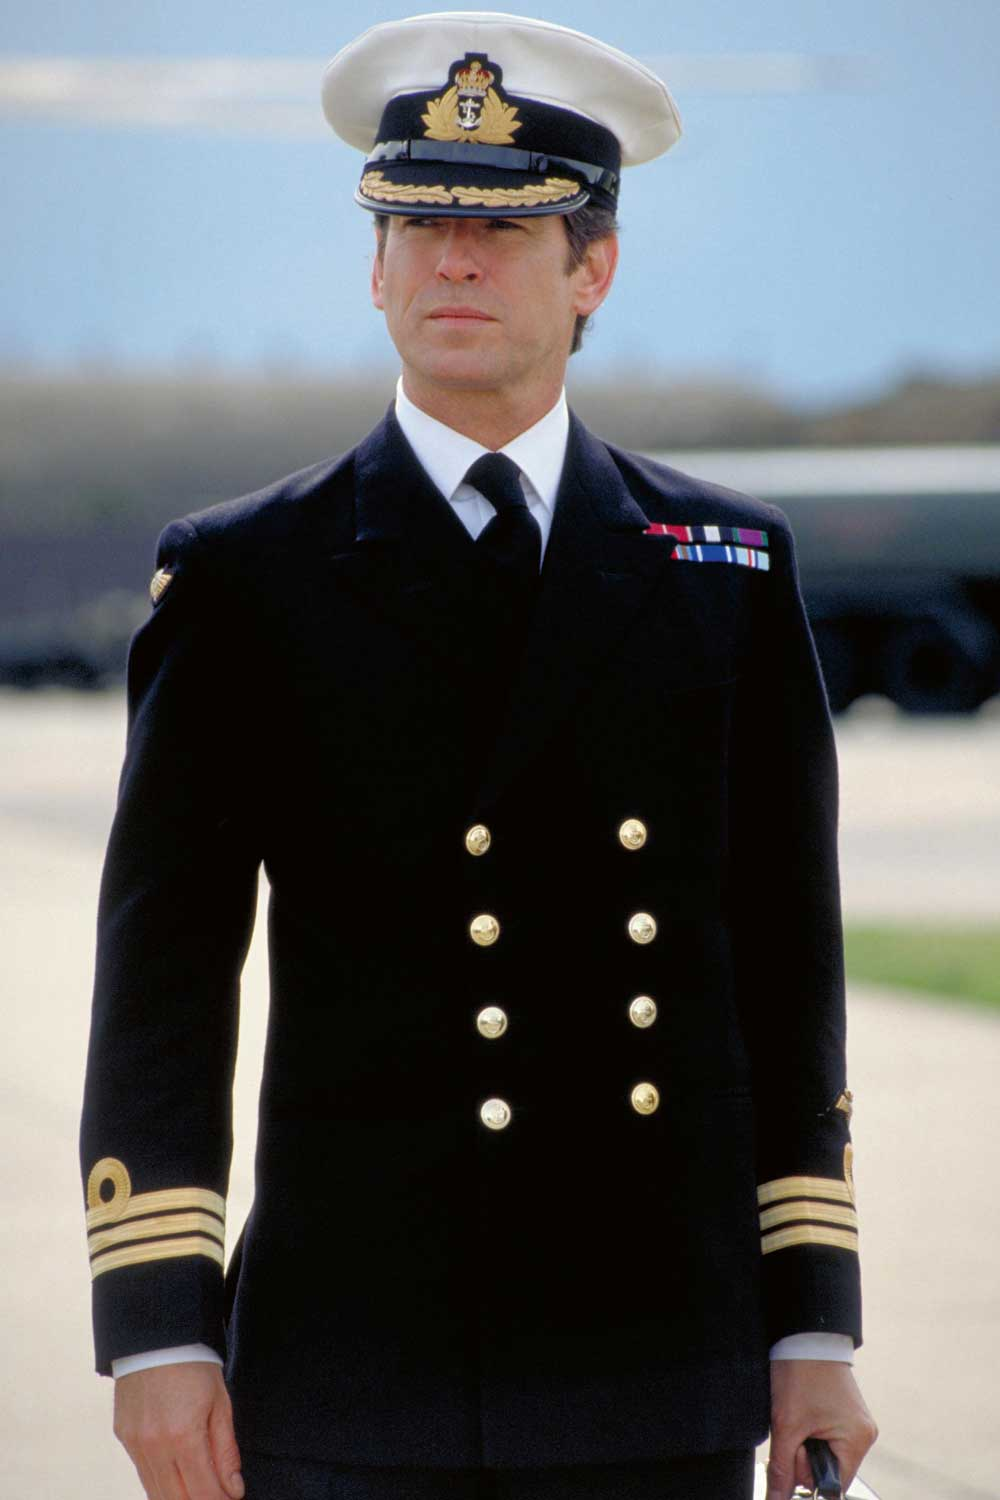 Pierce Brosnan in navy formal blues as Commander Bond